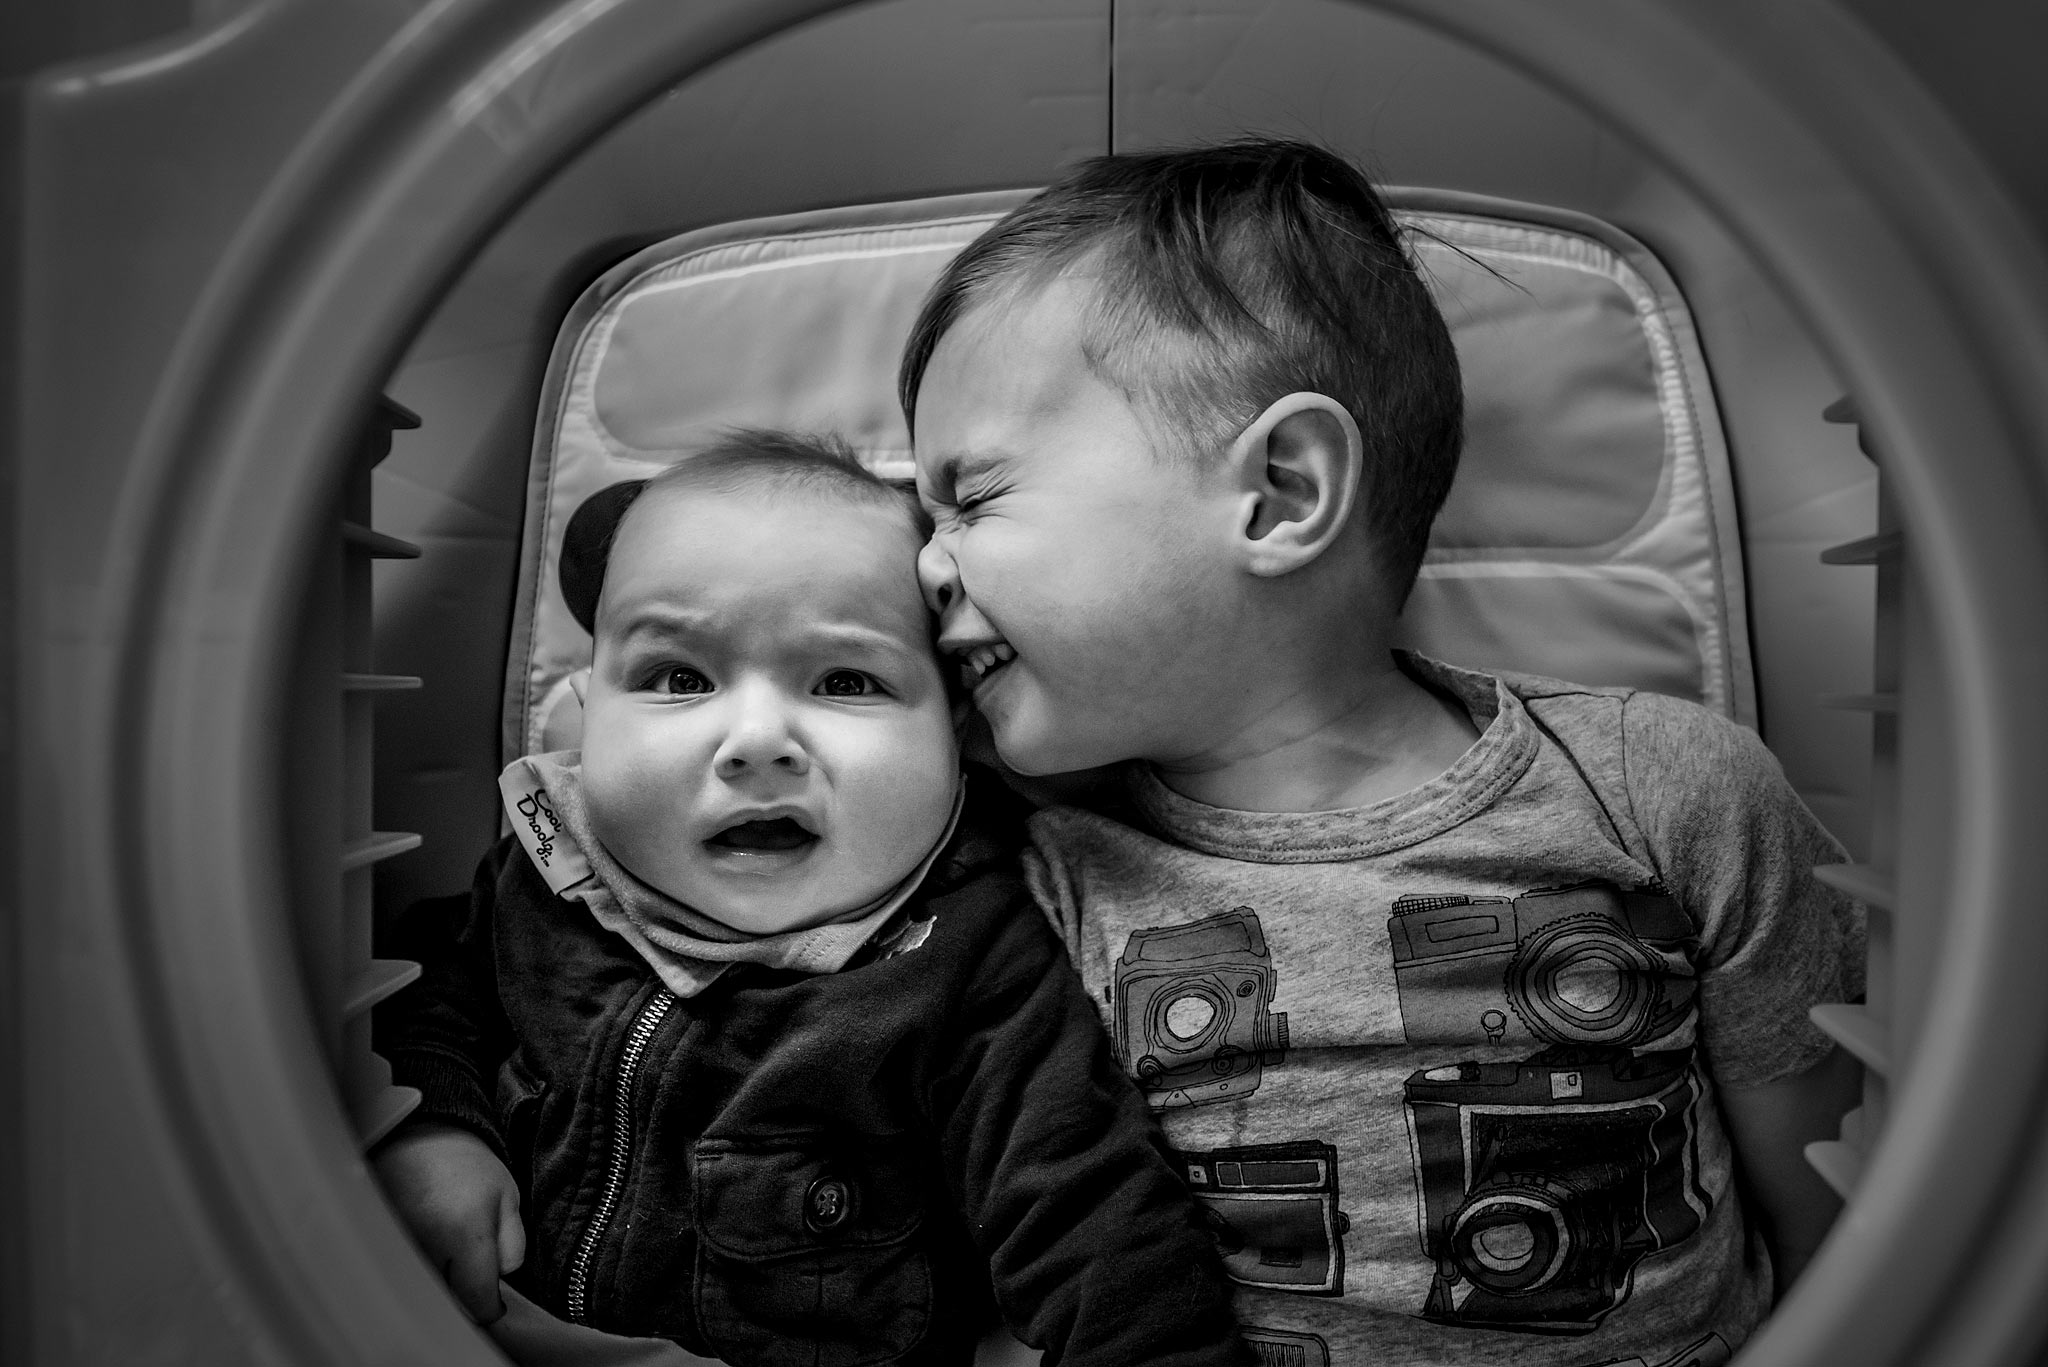 two brother making a funny face at each other by top family portrait photographer sean leblanc